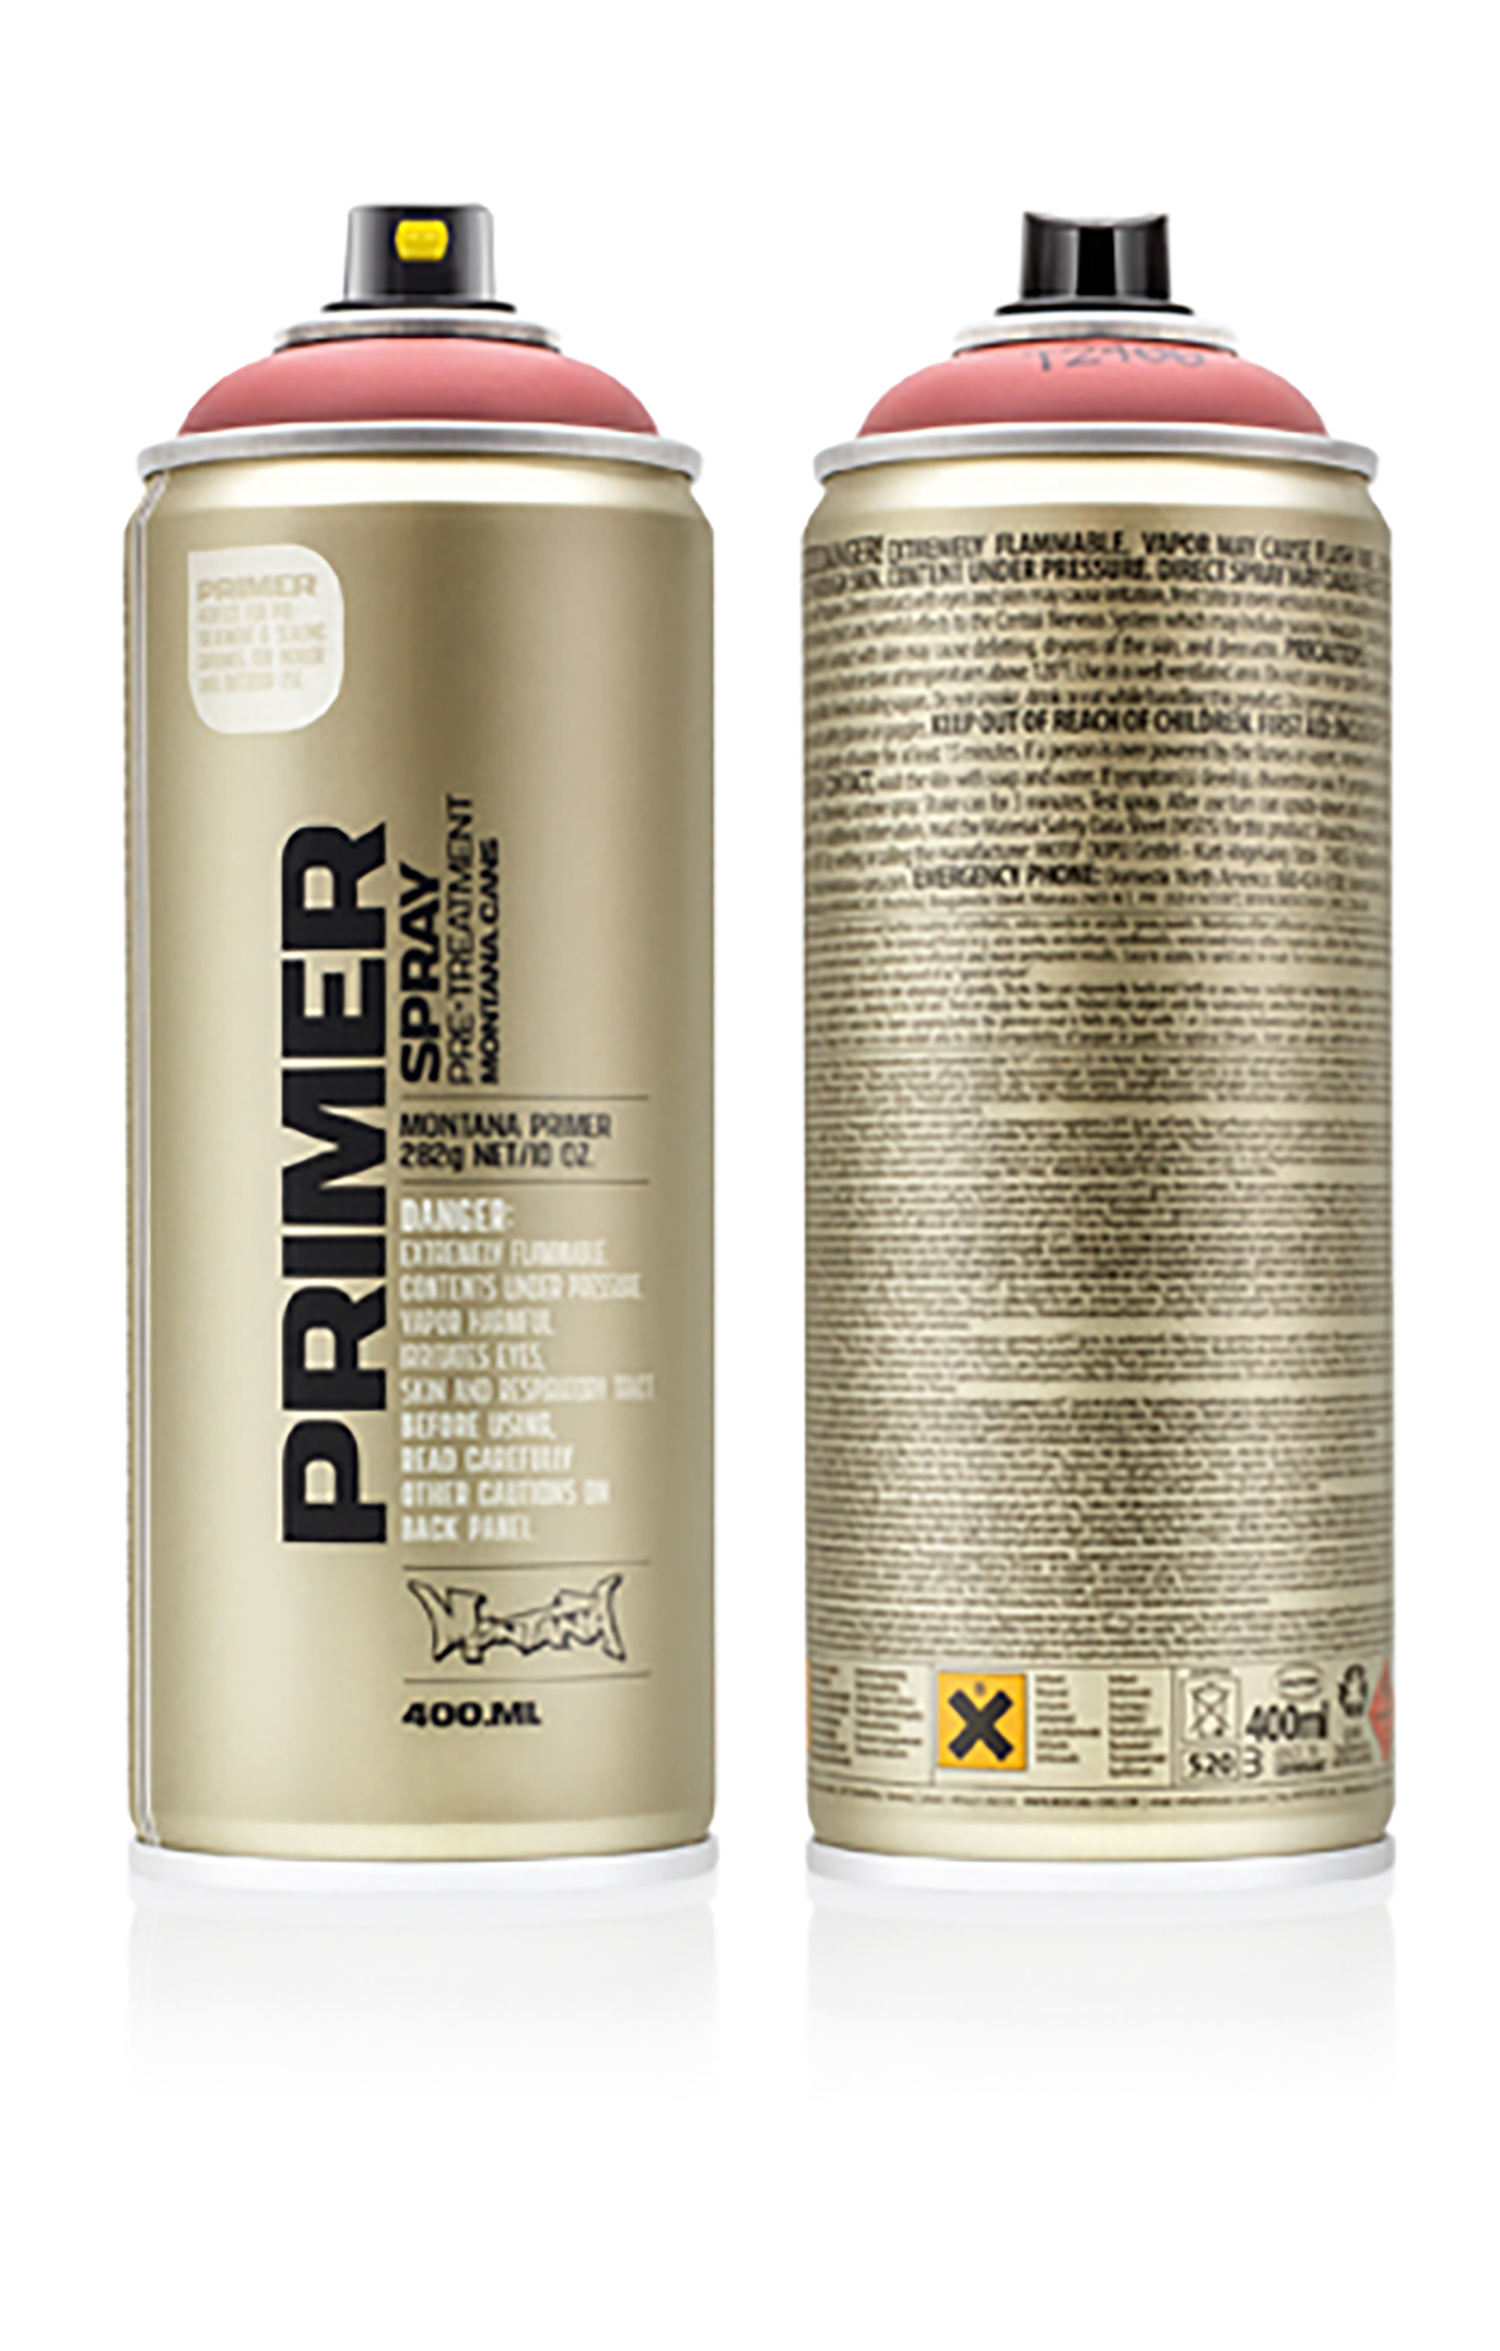 MONTANA-TECH-PRIMER-METAL-SPRAY-400ML